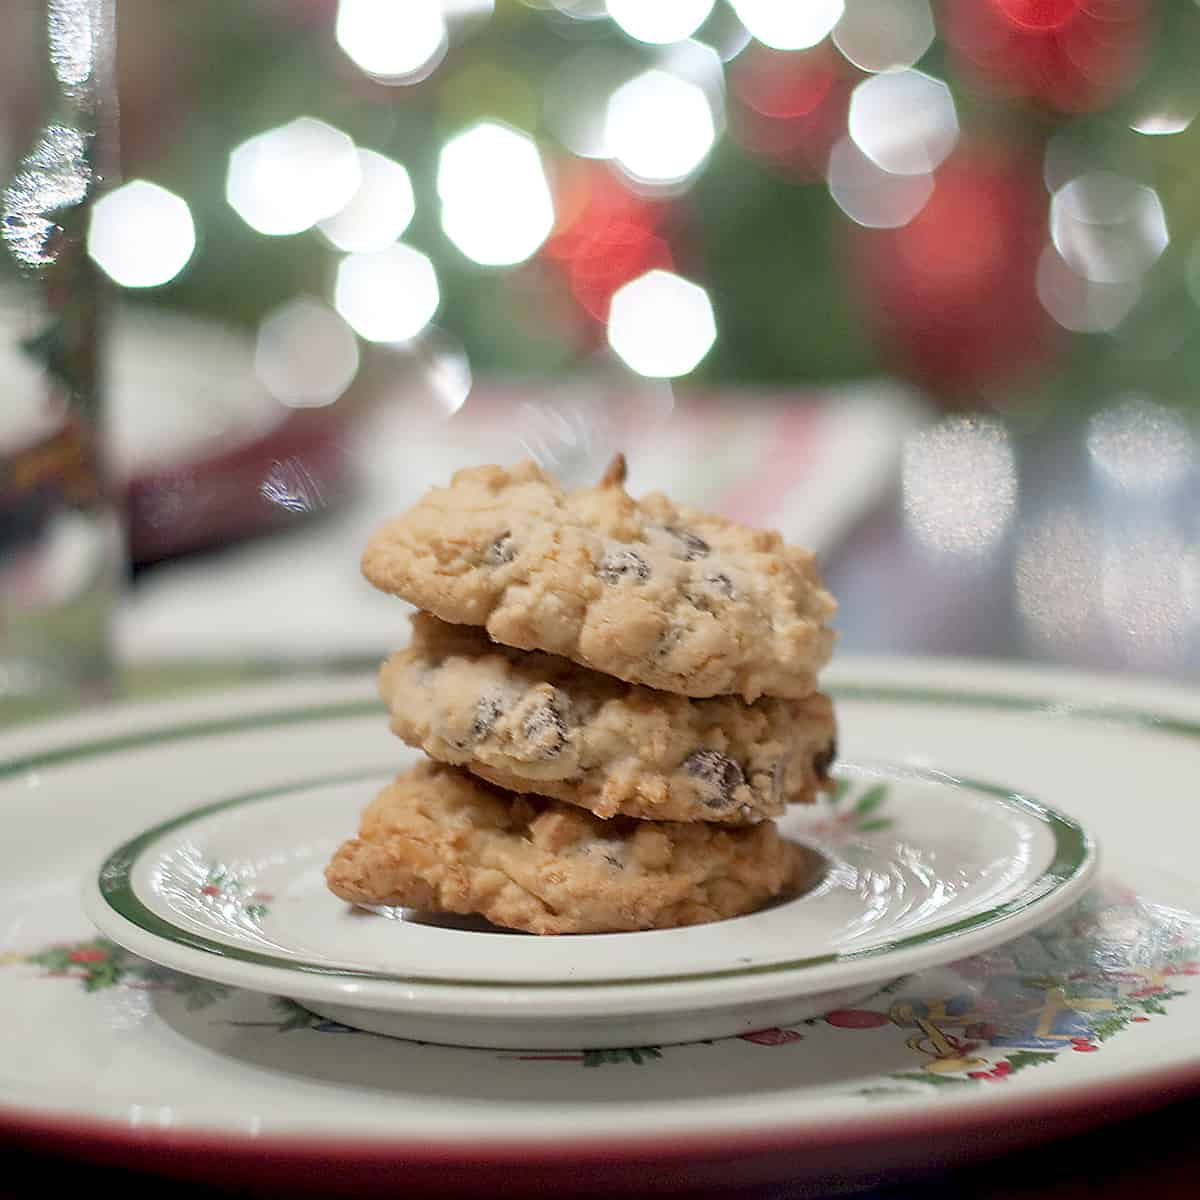 These Almond Joy Cookies are filled with milk chocolate, almonds, and coconut just like their namesake candy bar. From @NevrEnoughThyme https://www.lanascooking.com/almond-joy-cookies